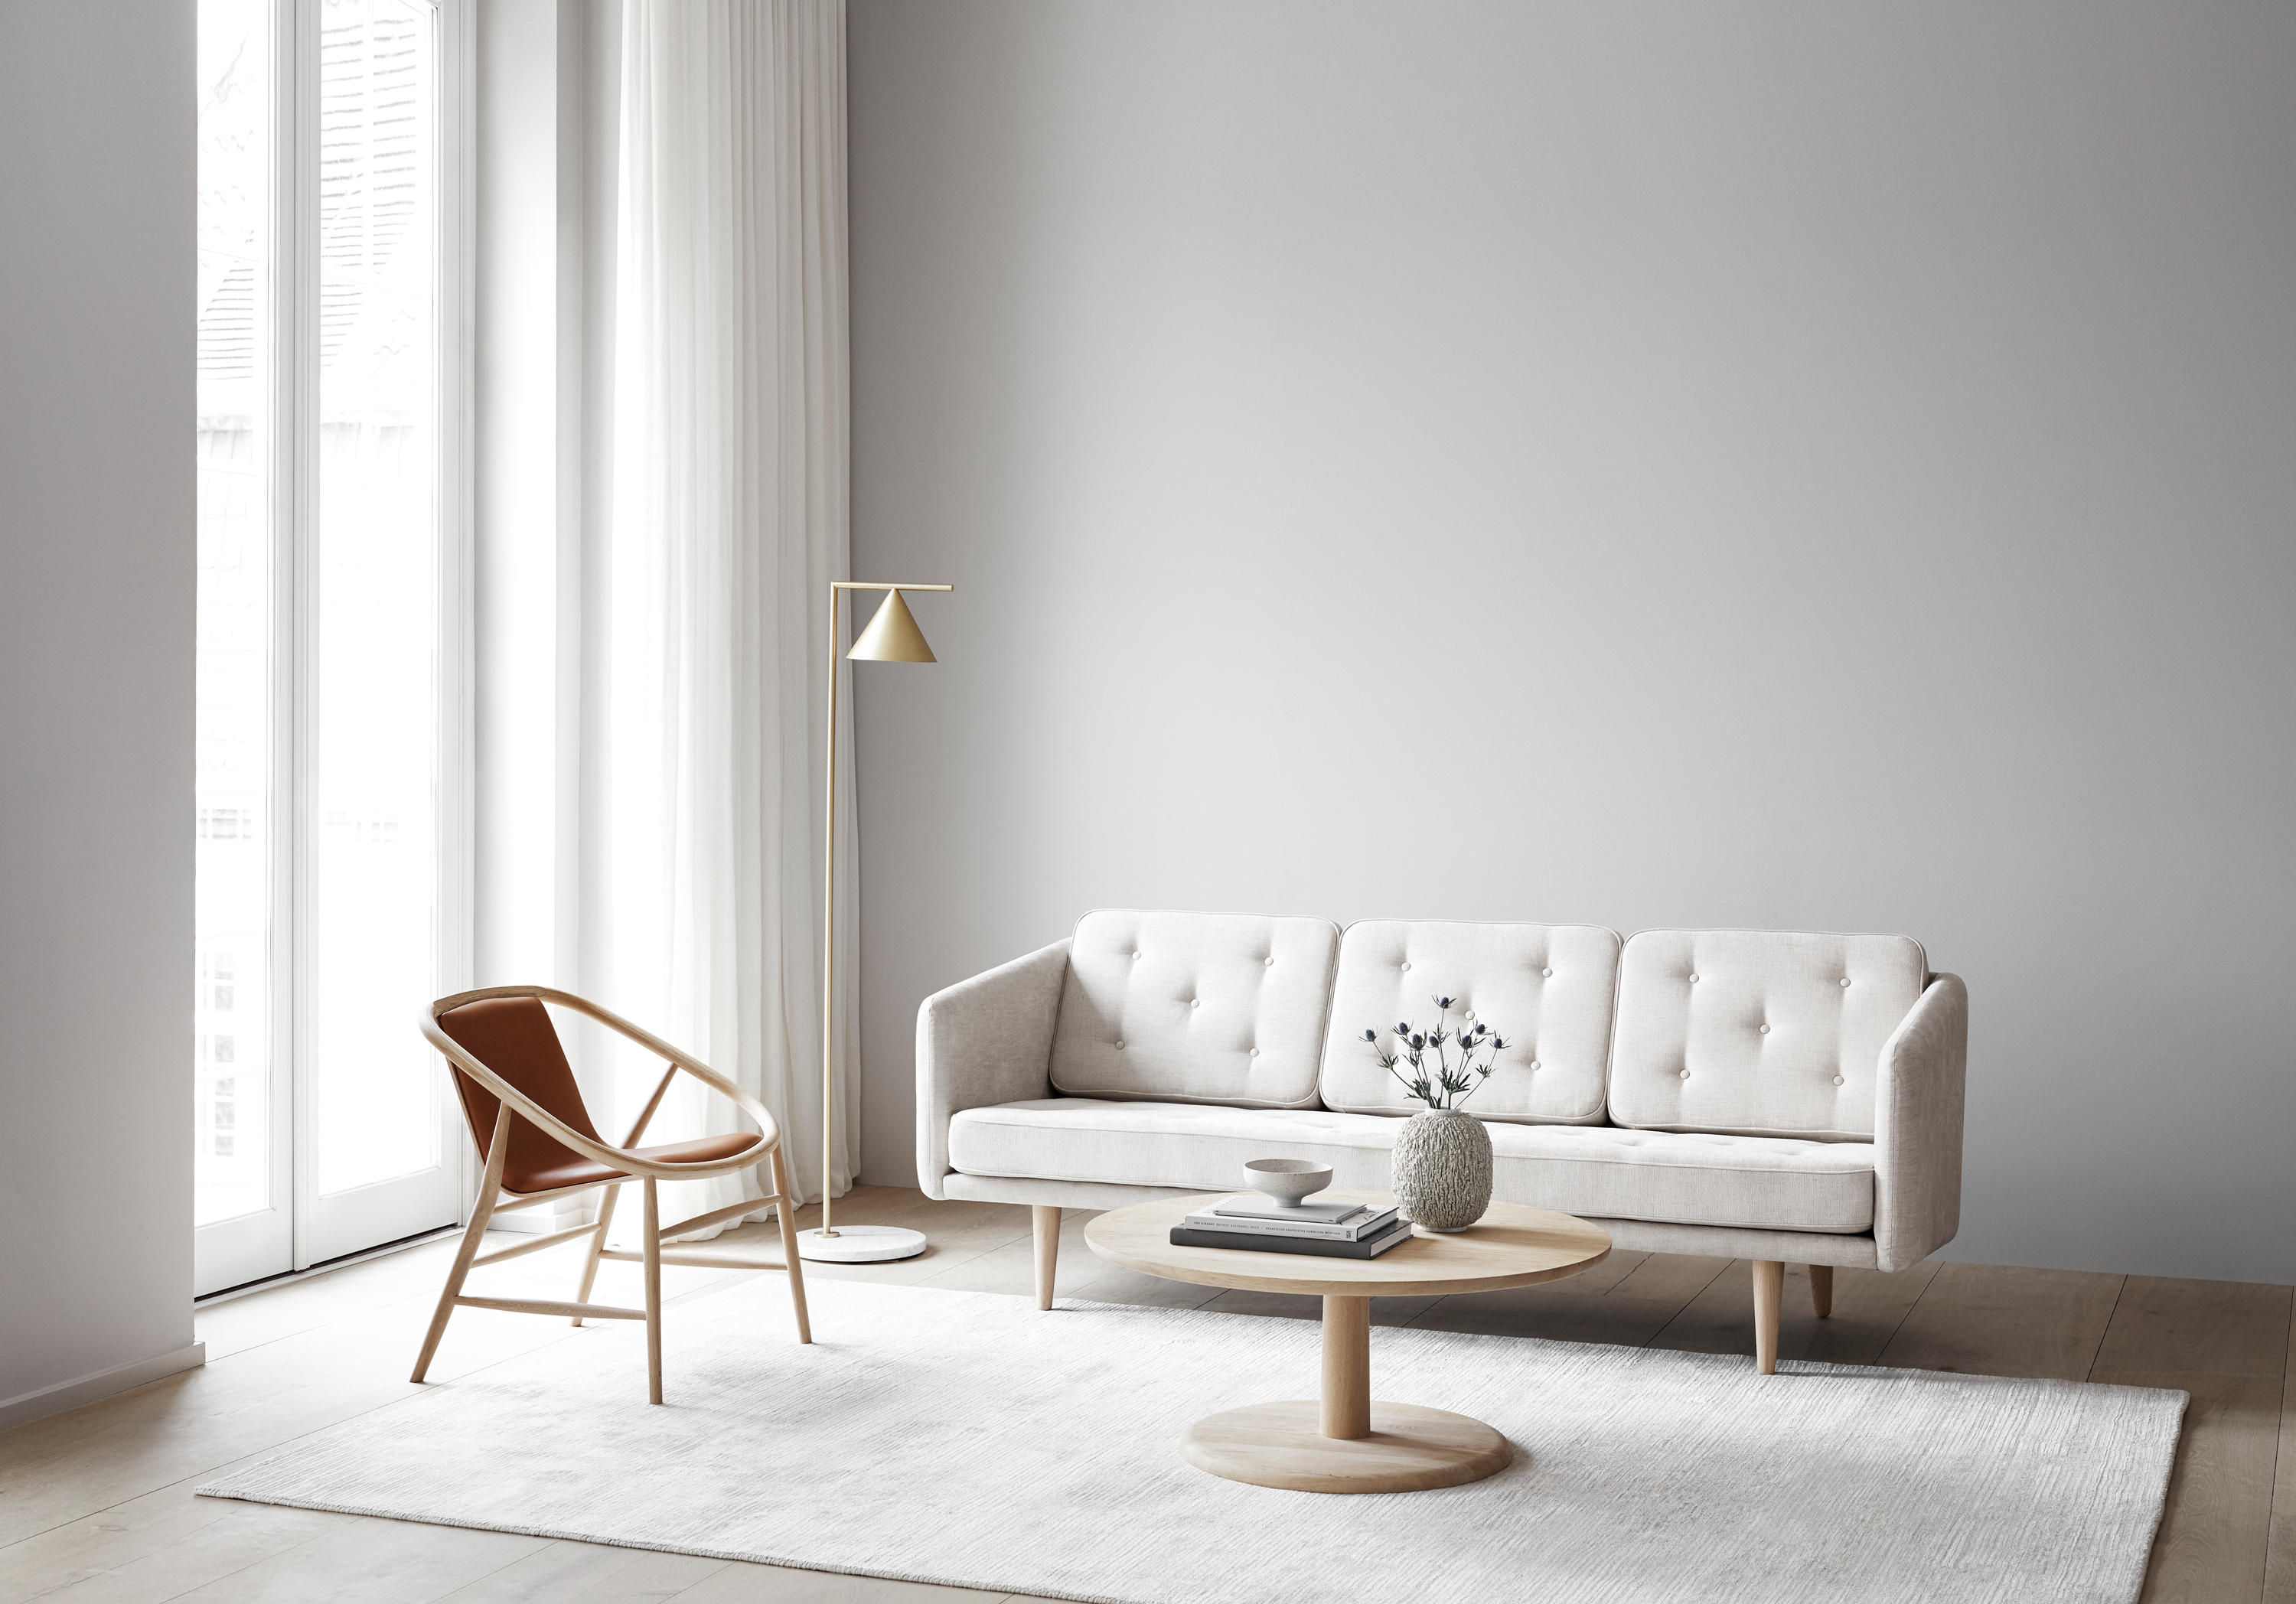 Delicieux Eve Chair By Fredericia Furniture · Eve Chair By Fredericia Furniture